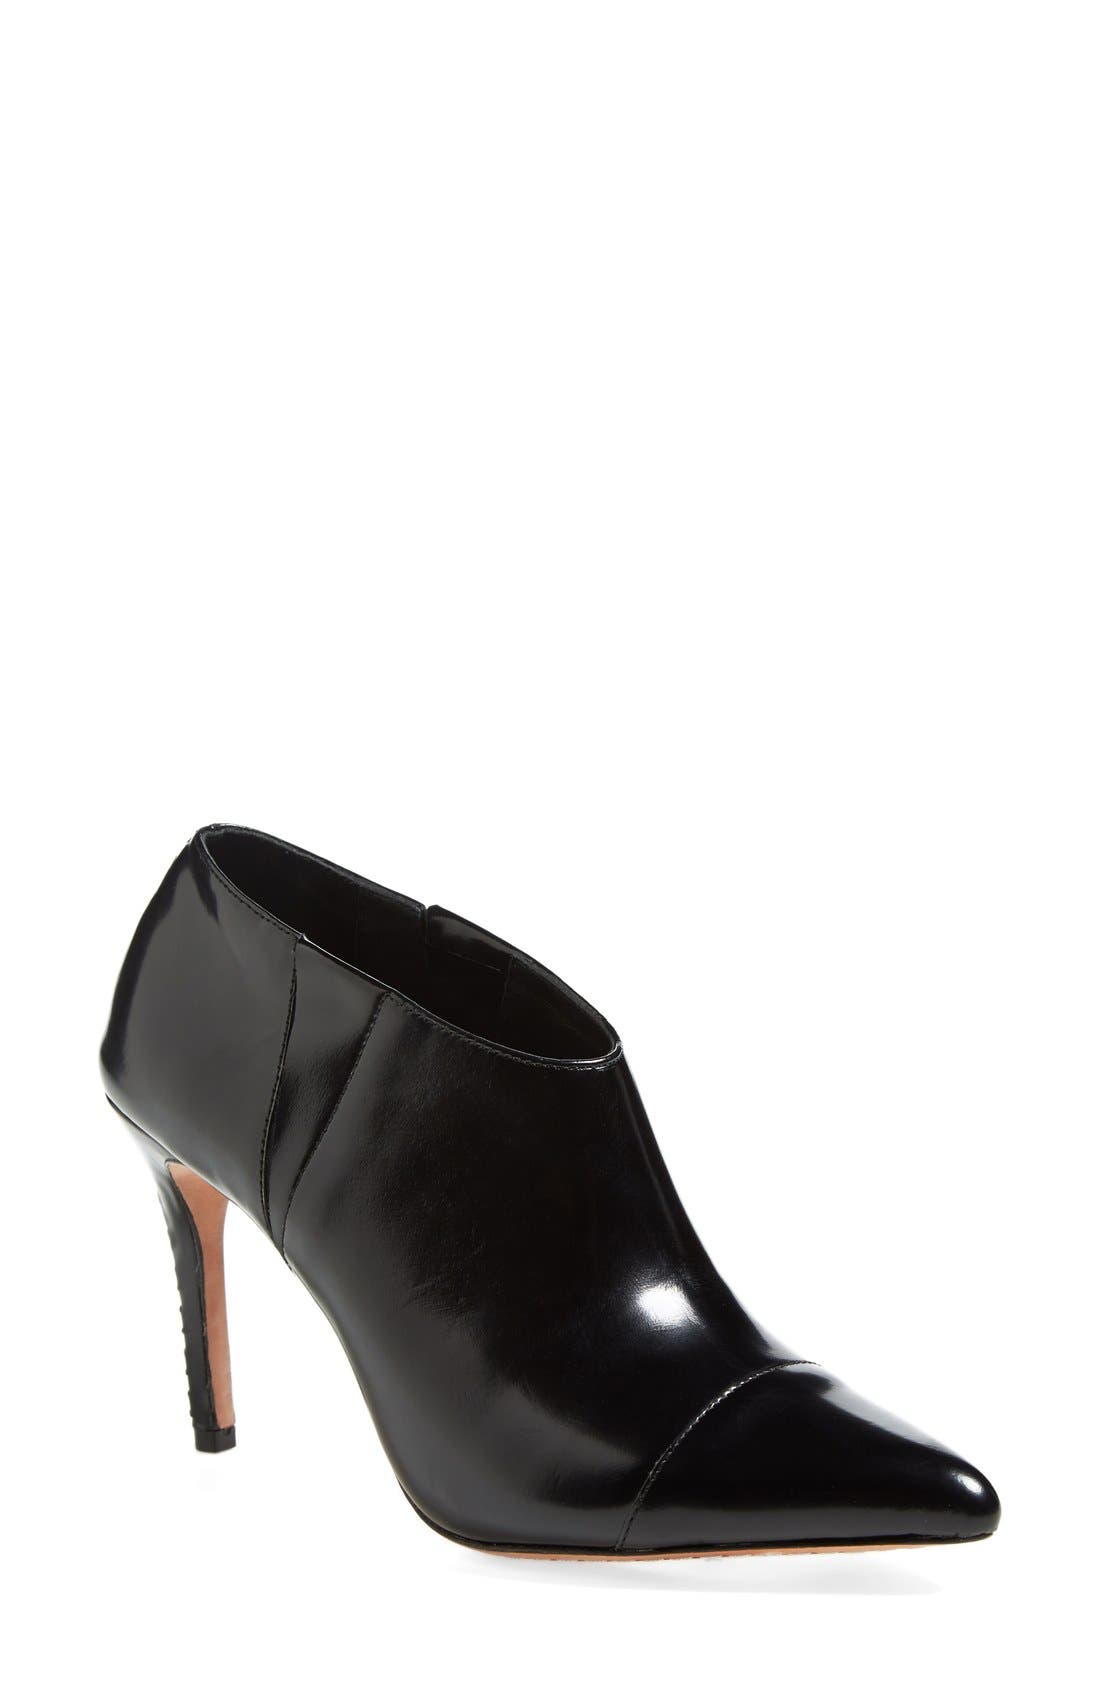 Alternate Image 1 Selected - Alice + Olivia 'Dex' Pointy Toe Bootie (Women)